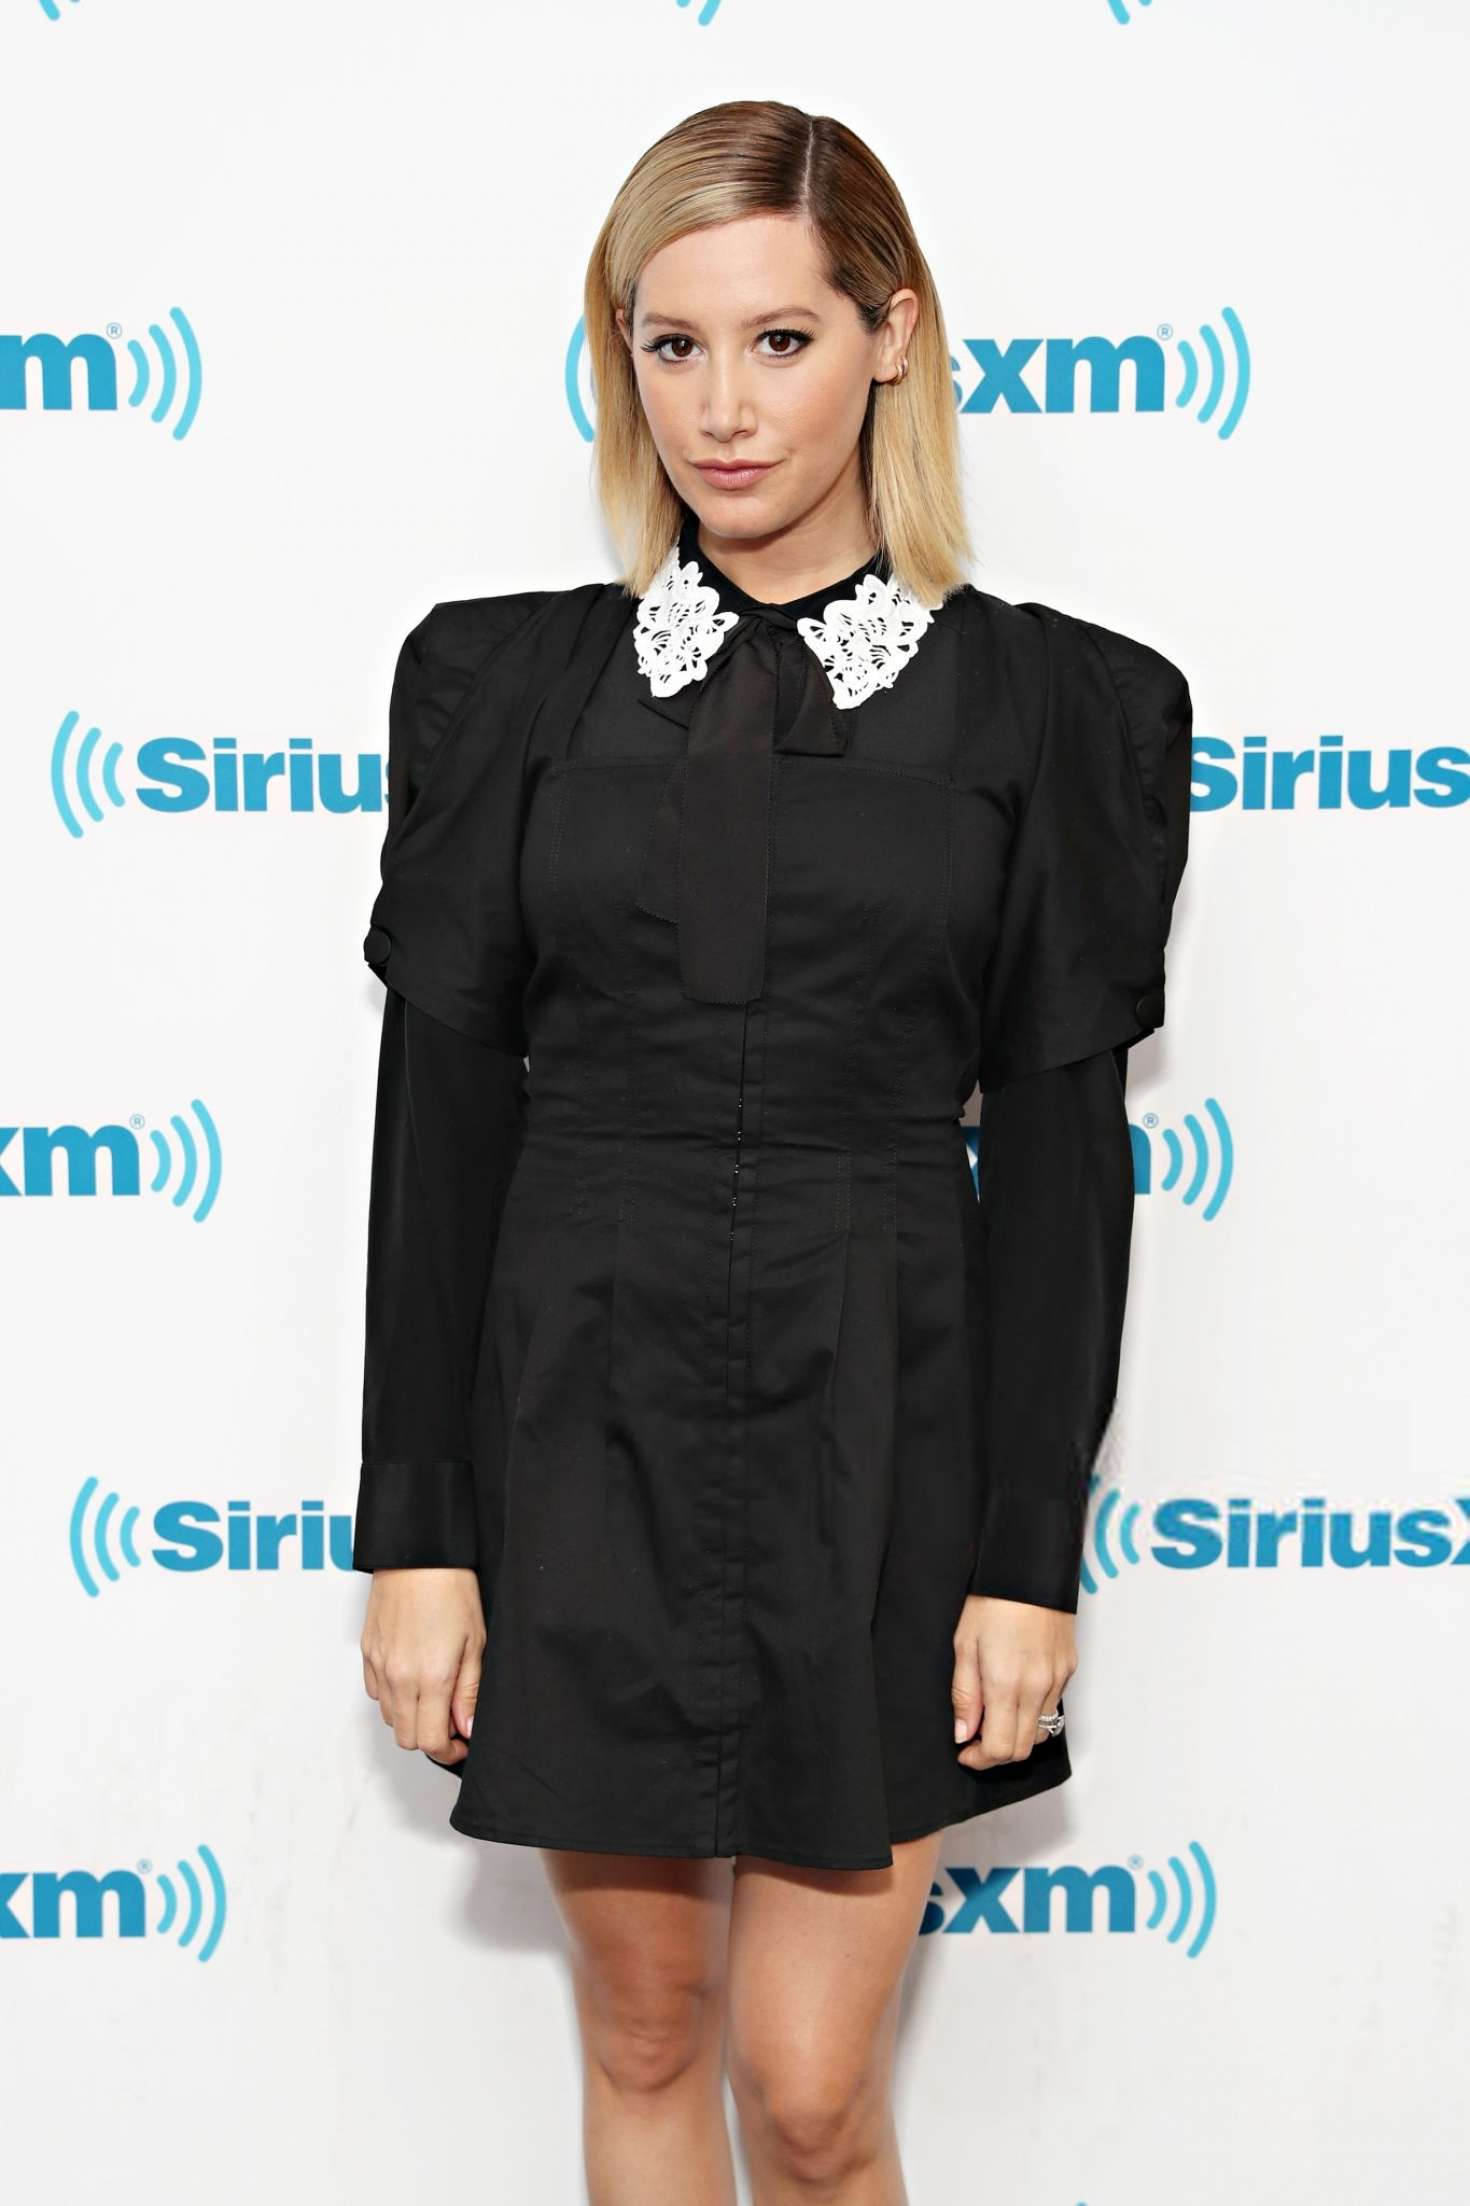 Ashley Tisdale - Visits the SiriusXM Studios in New York City